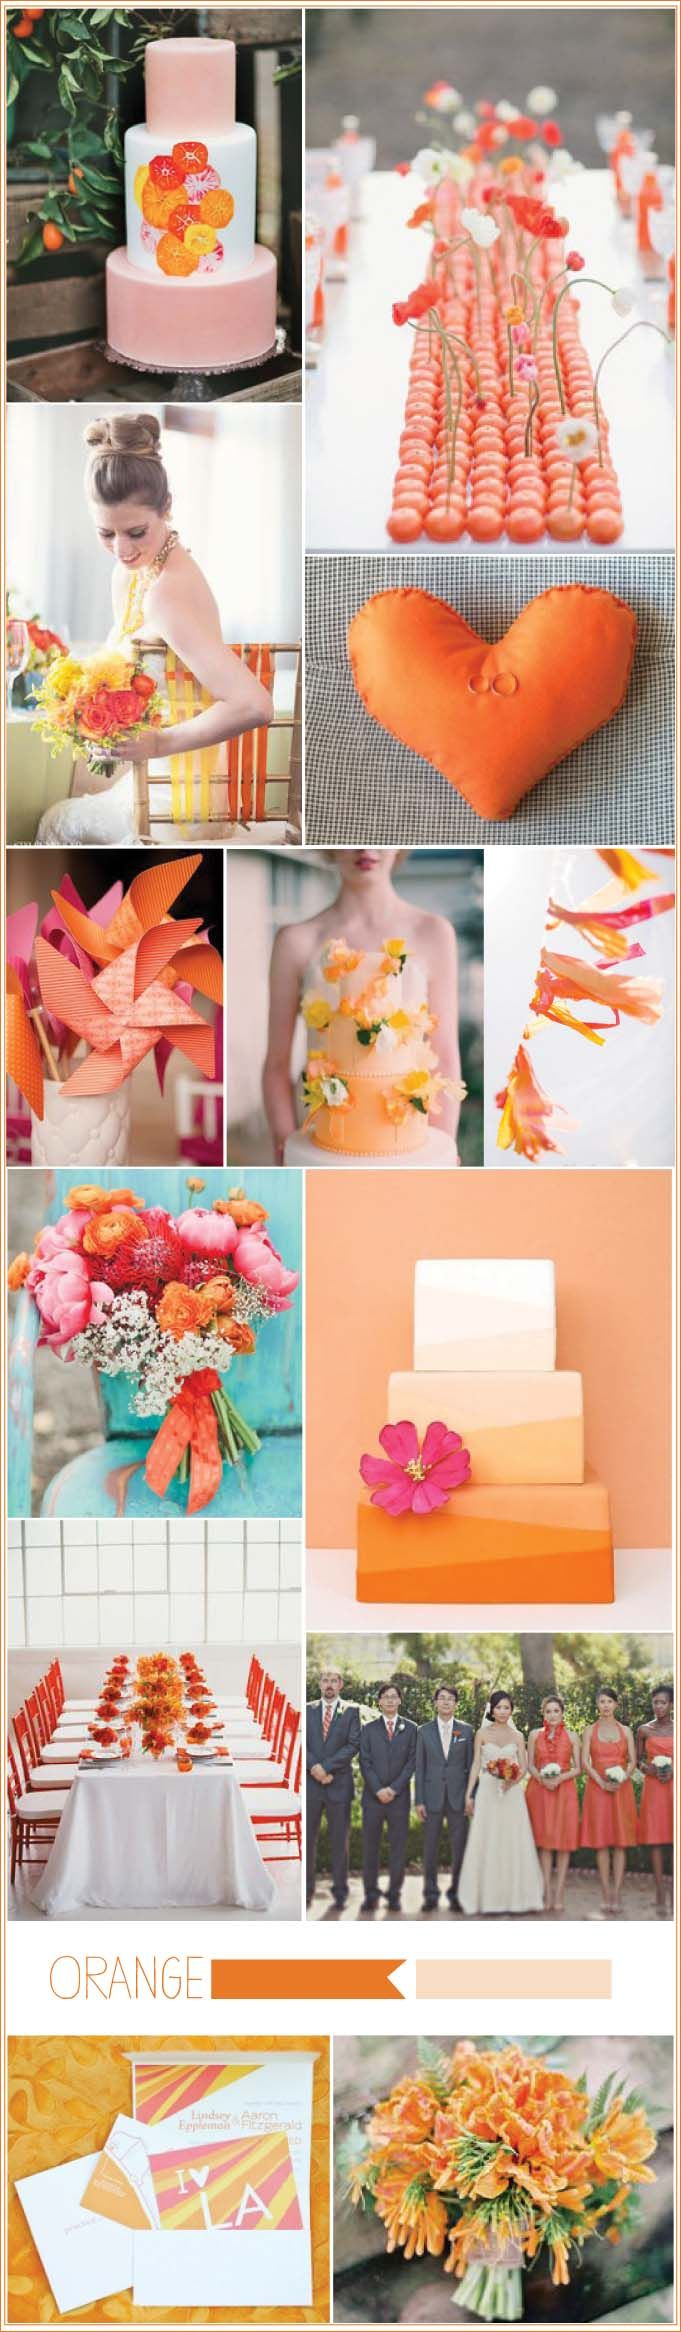 Tangerine and Orange Wedding Inspiration